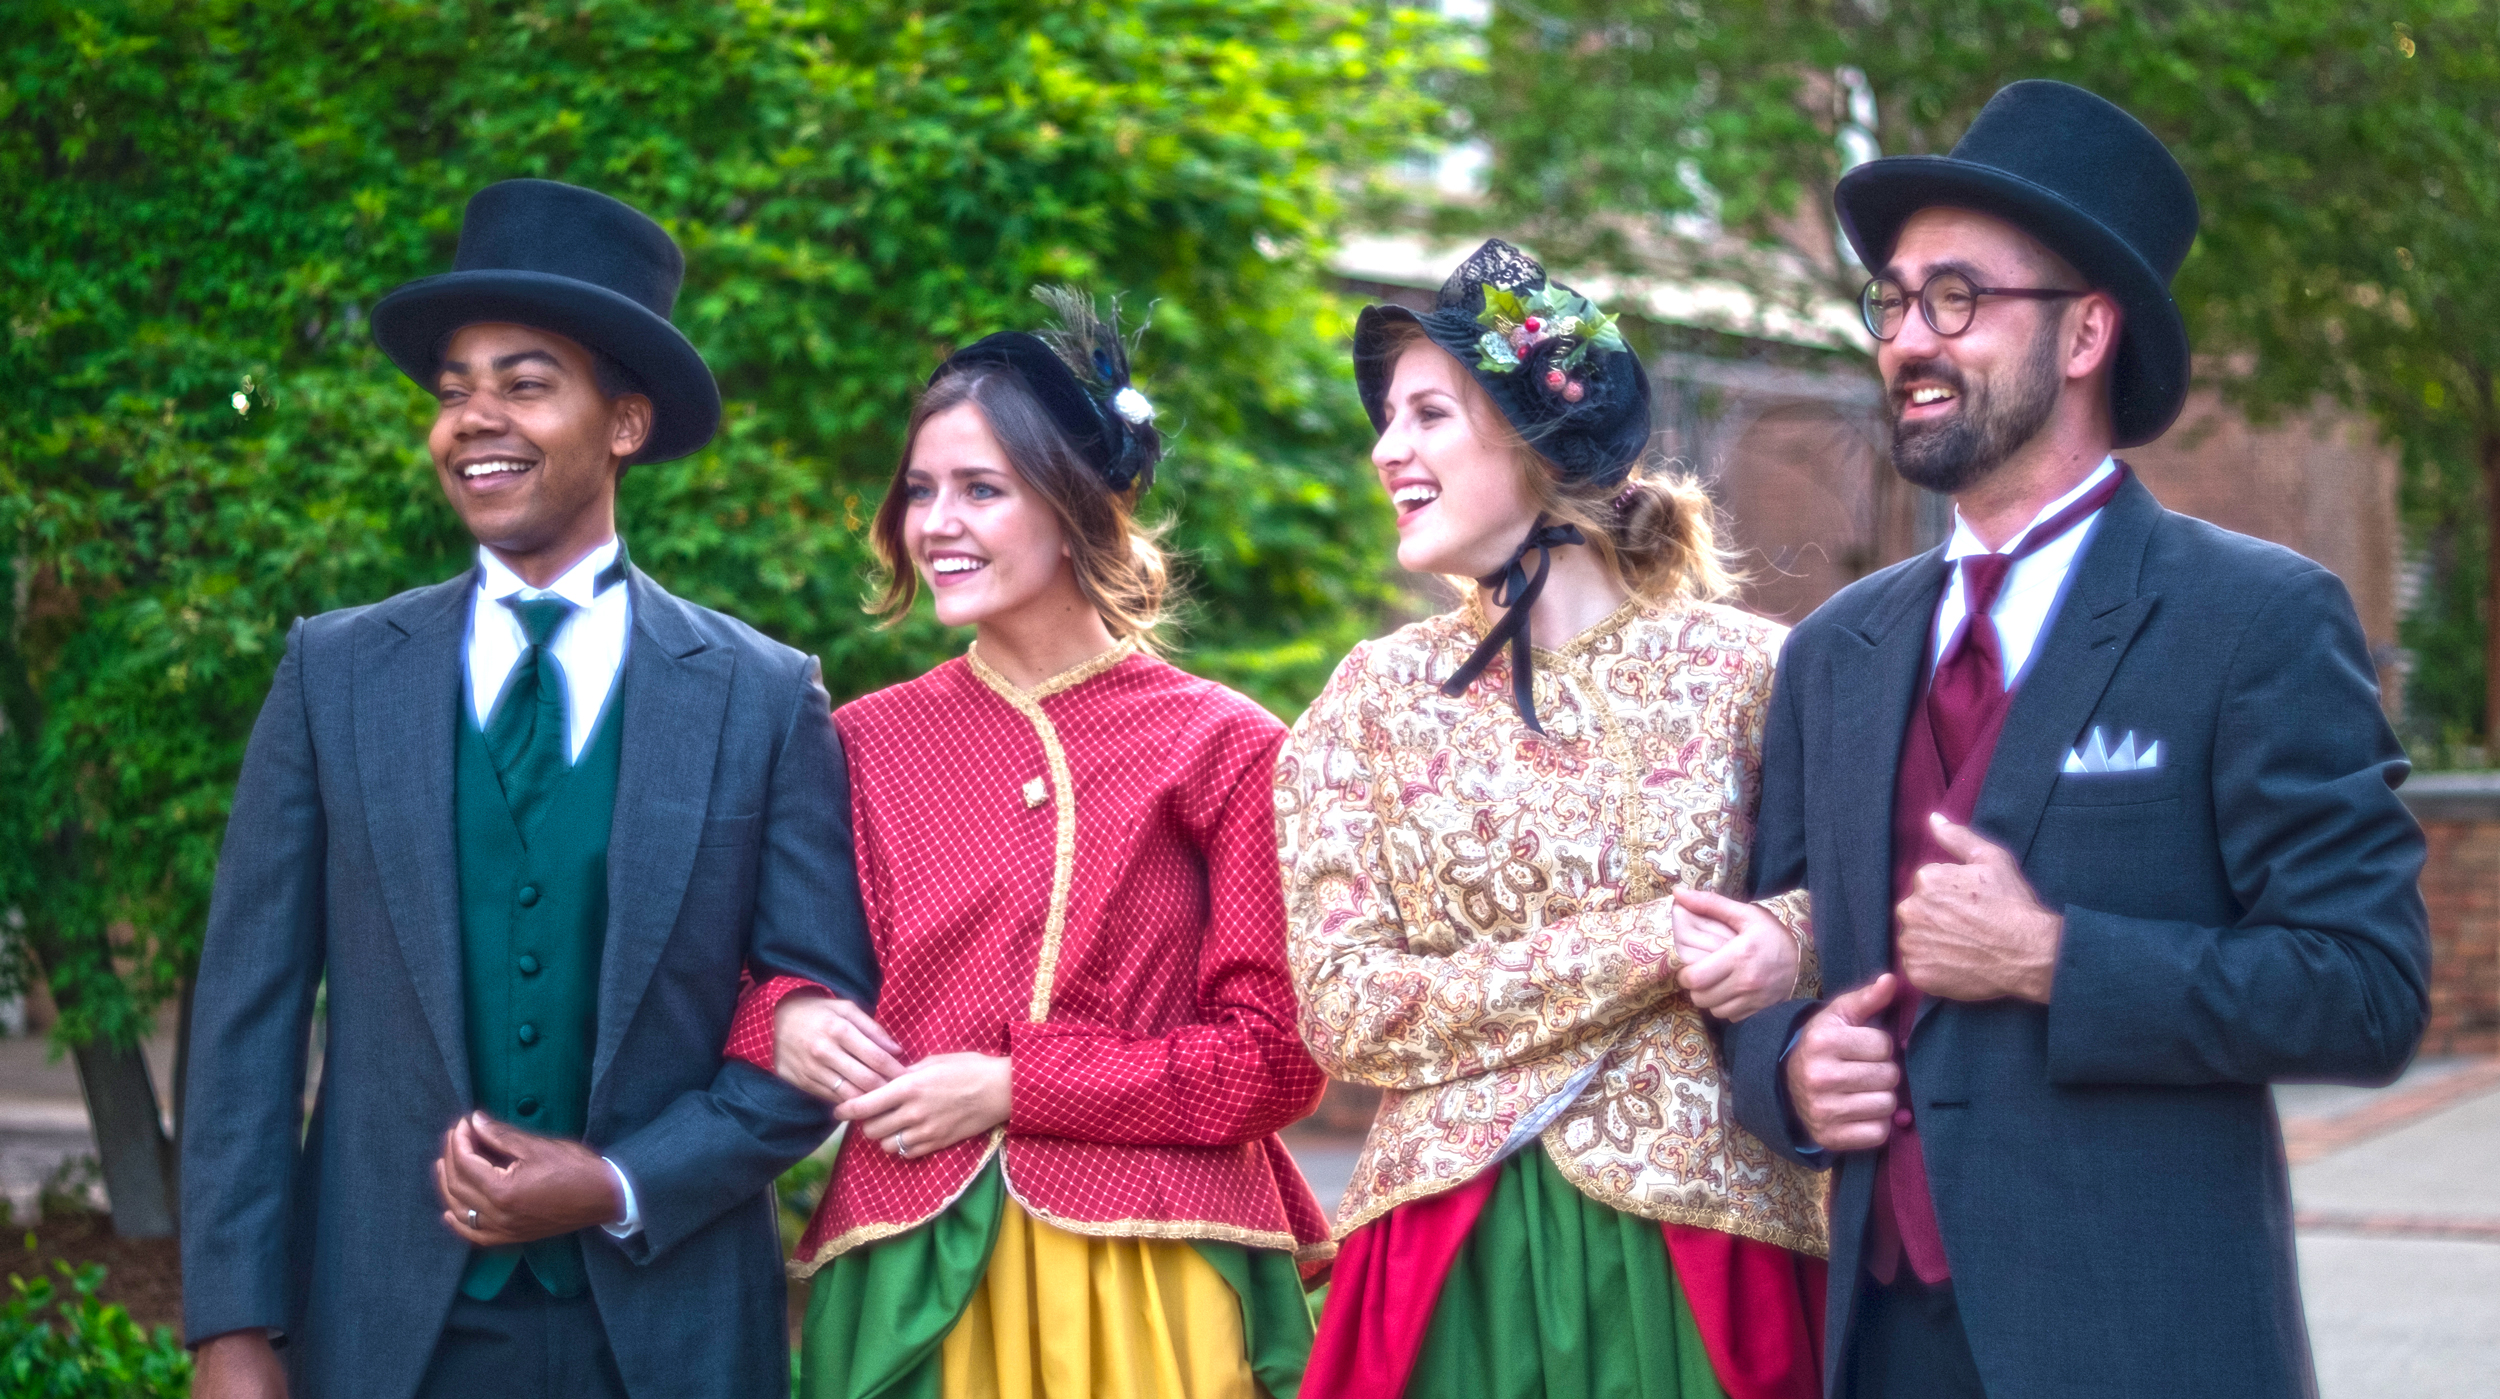 the christmas carolersthe christmas carolers provide carolers dressed in dickens and victorian styled costumes and sing acapella christmas carols at parties